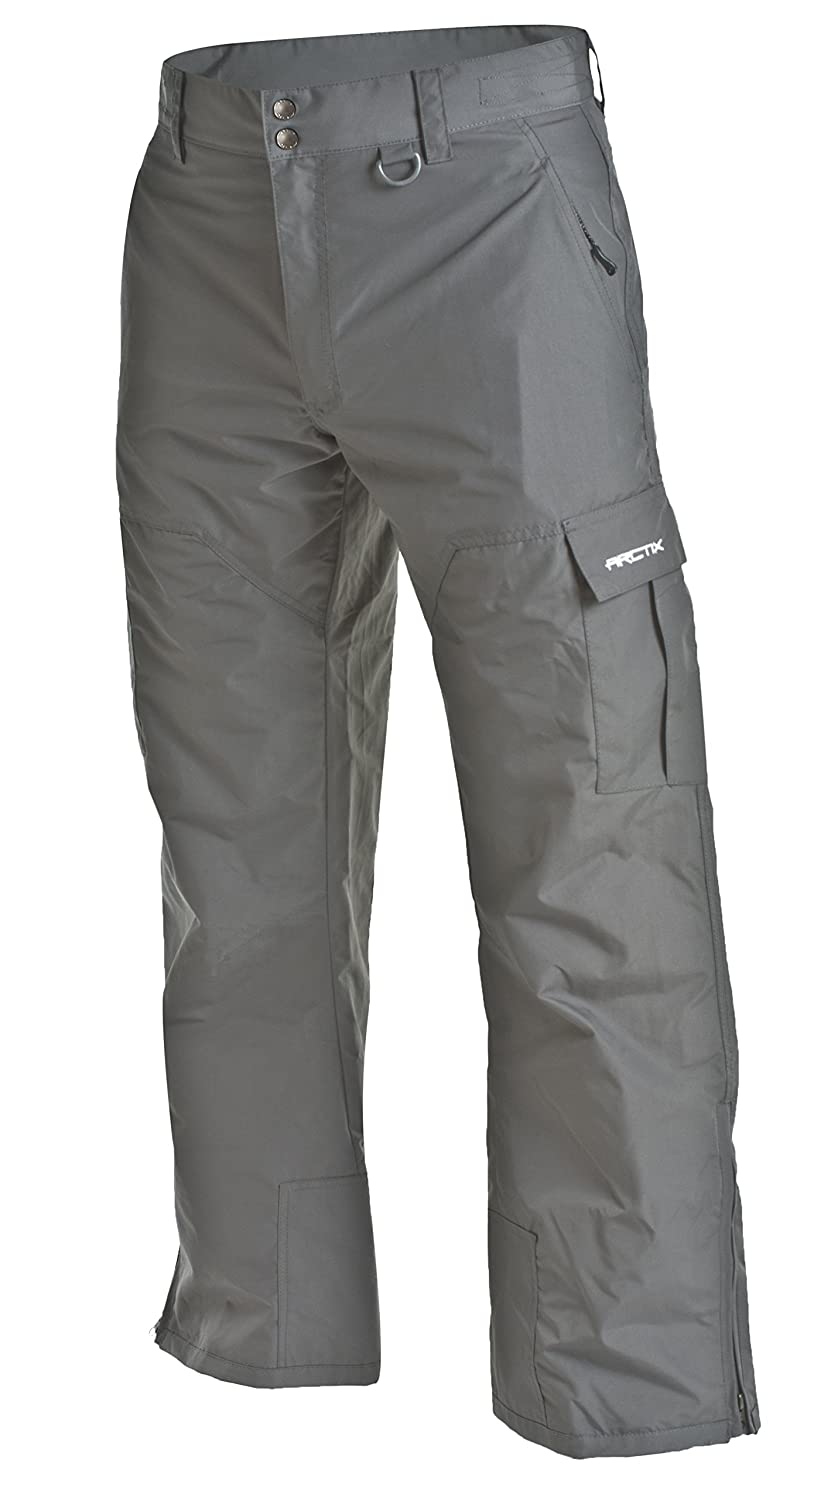 Amazon.com : Arctix Men's Snowboard Cargo Pants : Sports & Outdoors